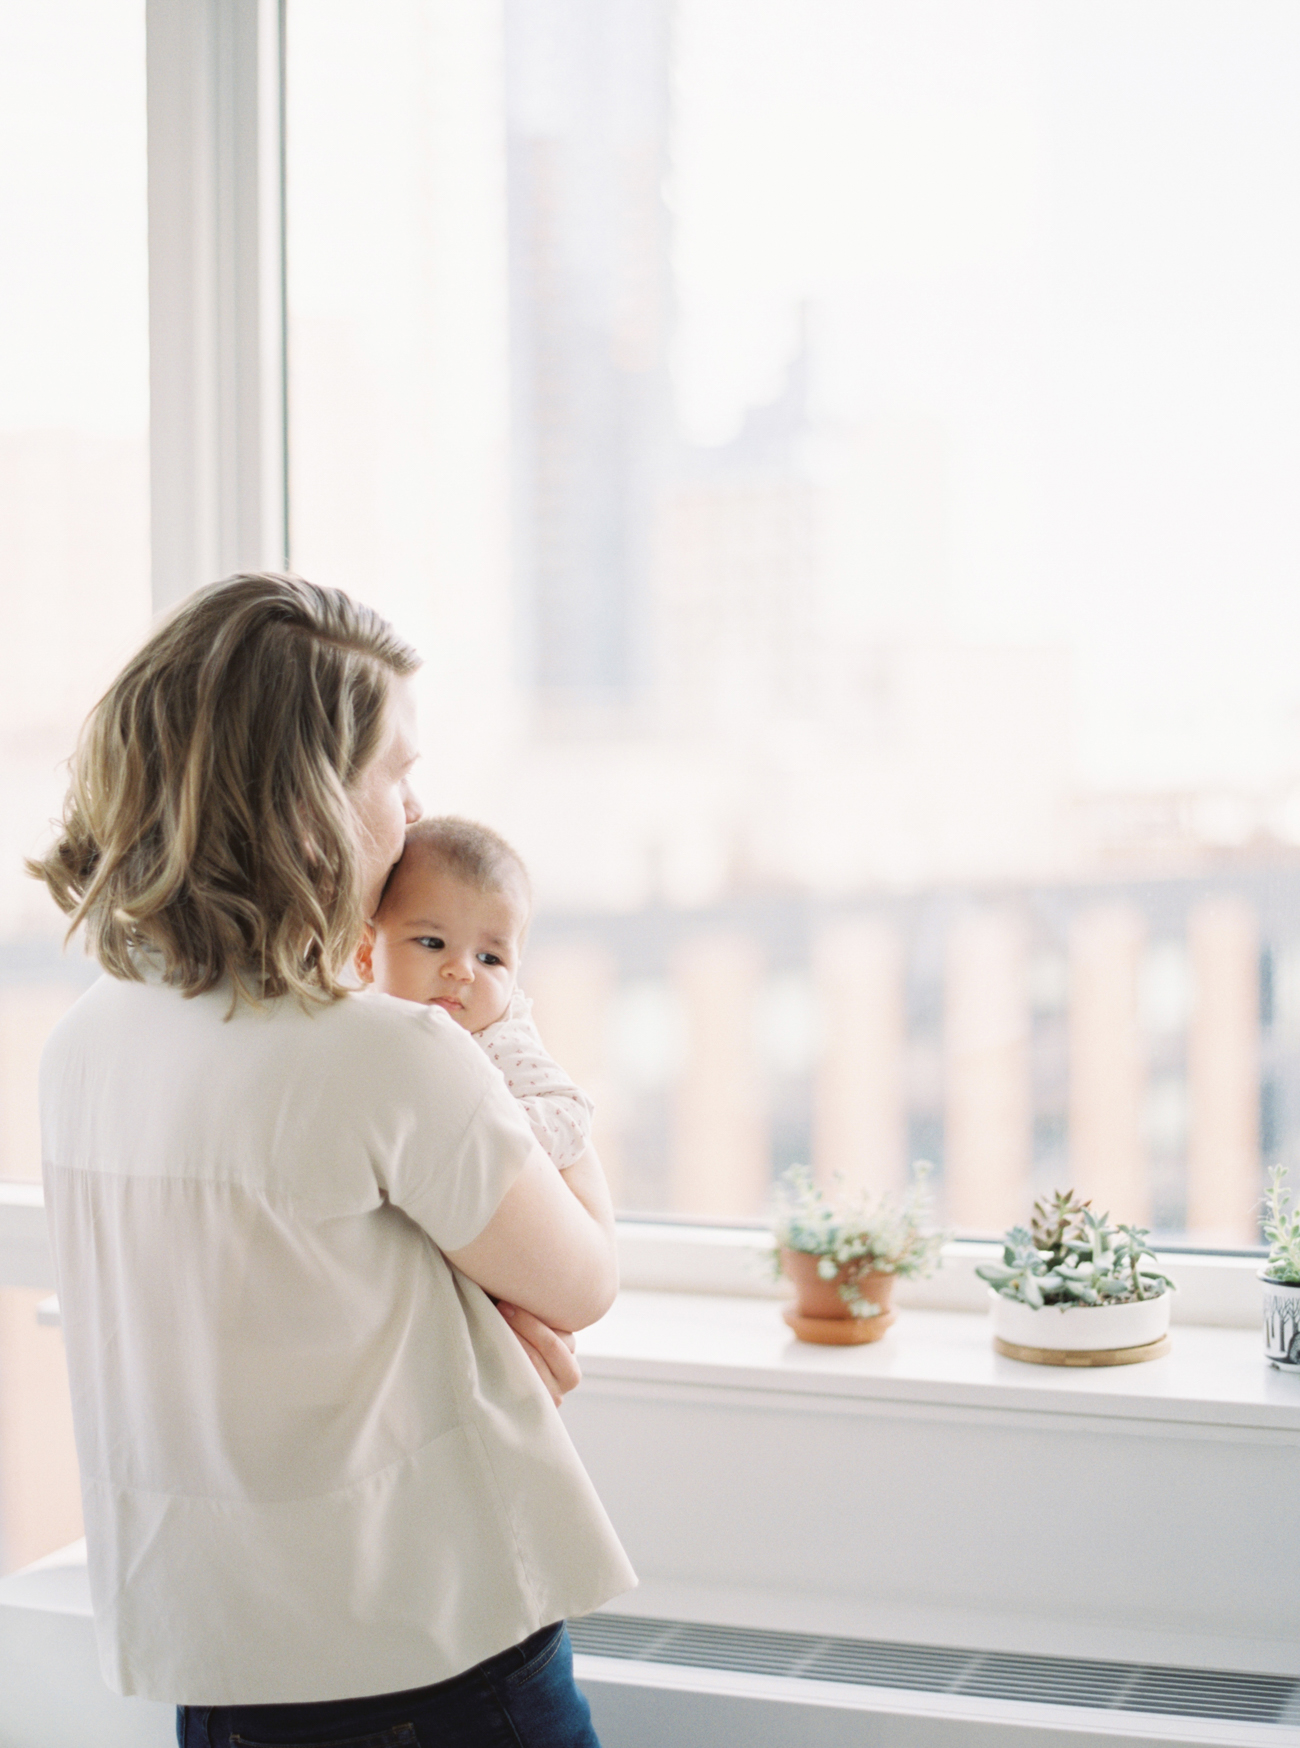 NYC Family Shoot, Family Session in New York, Susanna Nordvall, Newborn, at home shoot in NYC, Family Photographer in NYC